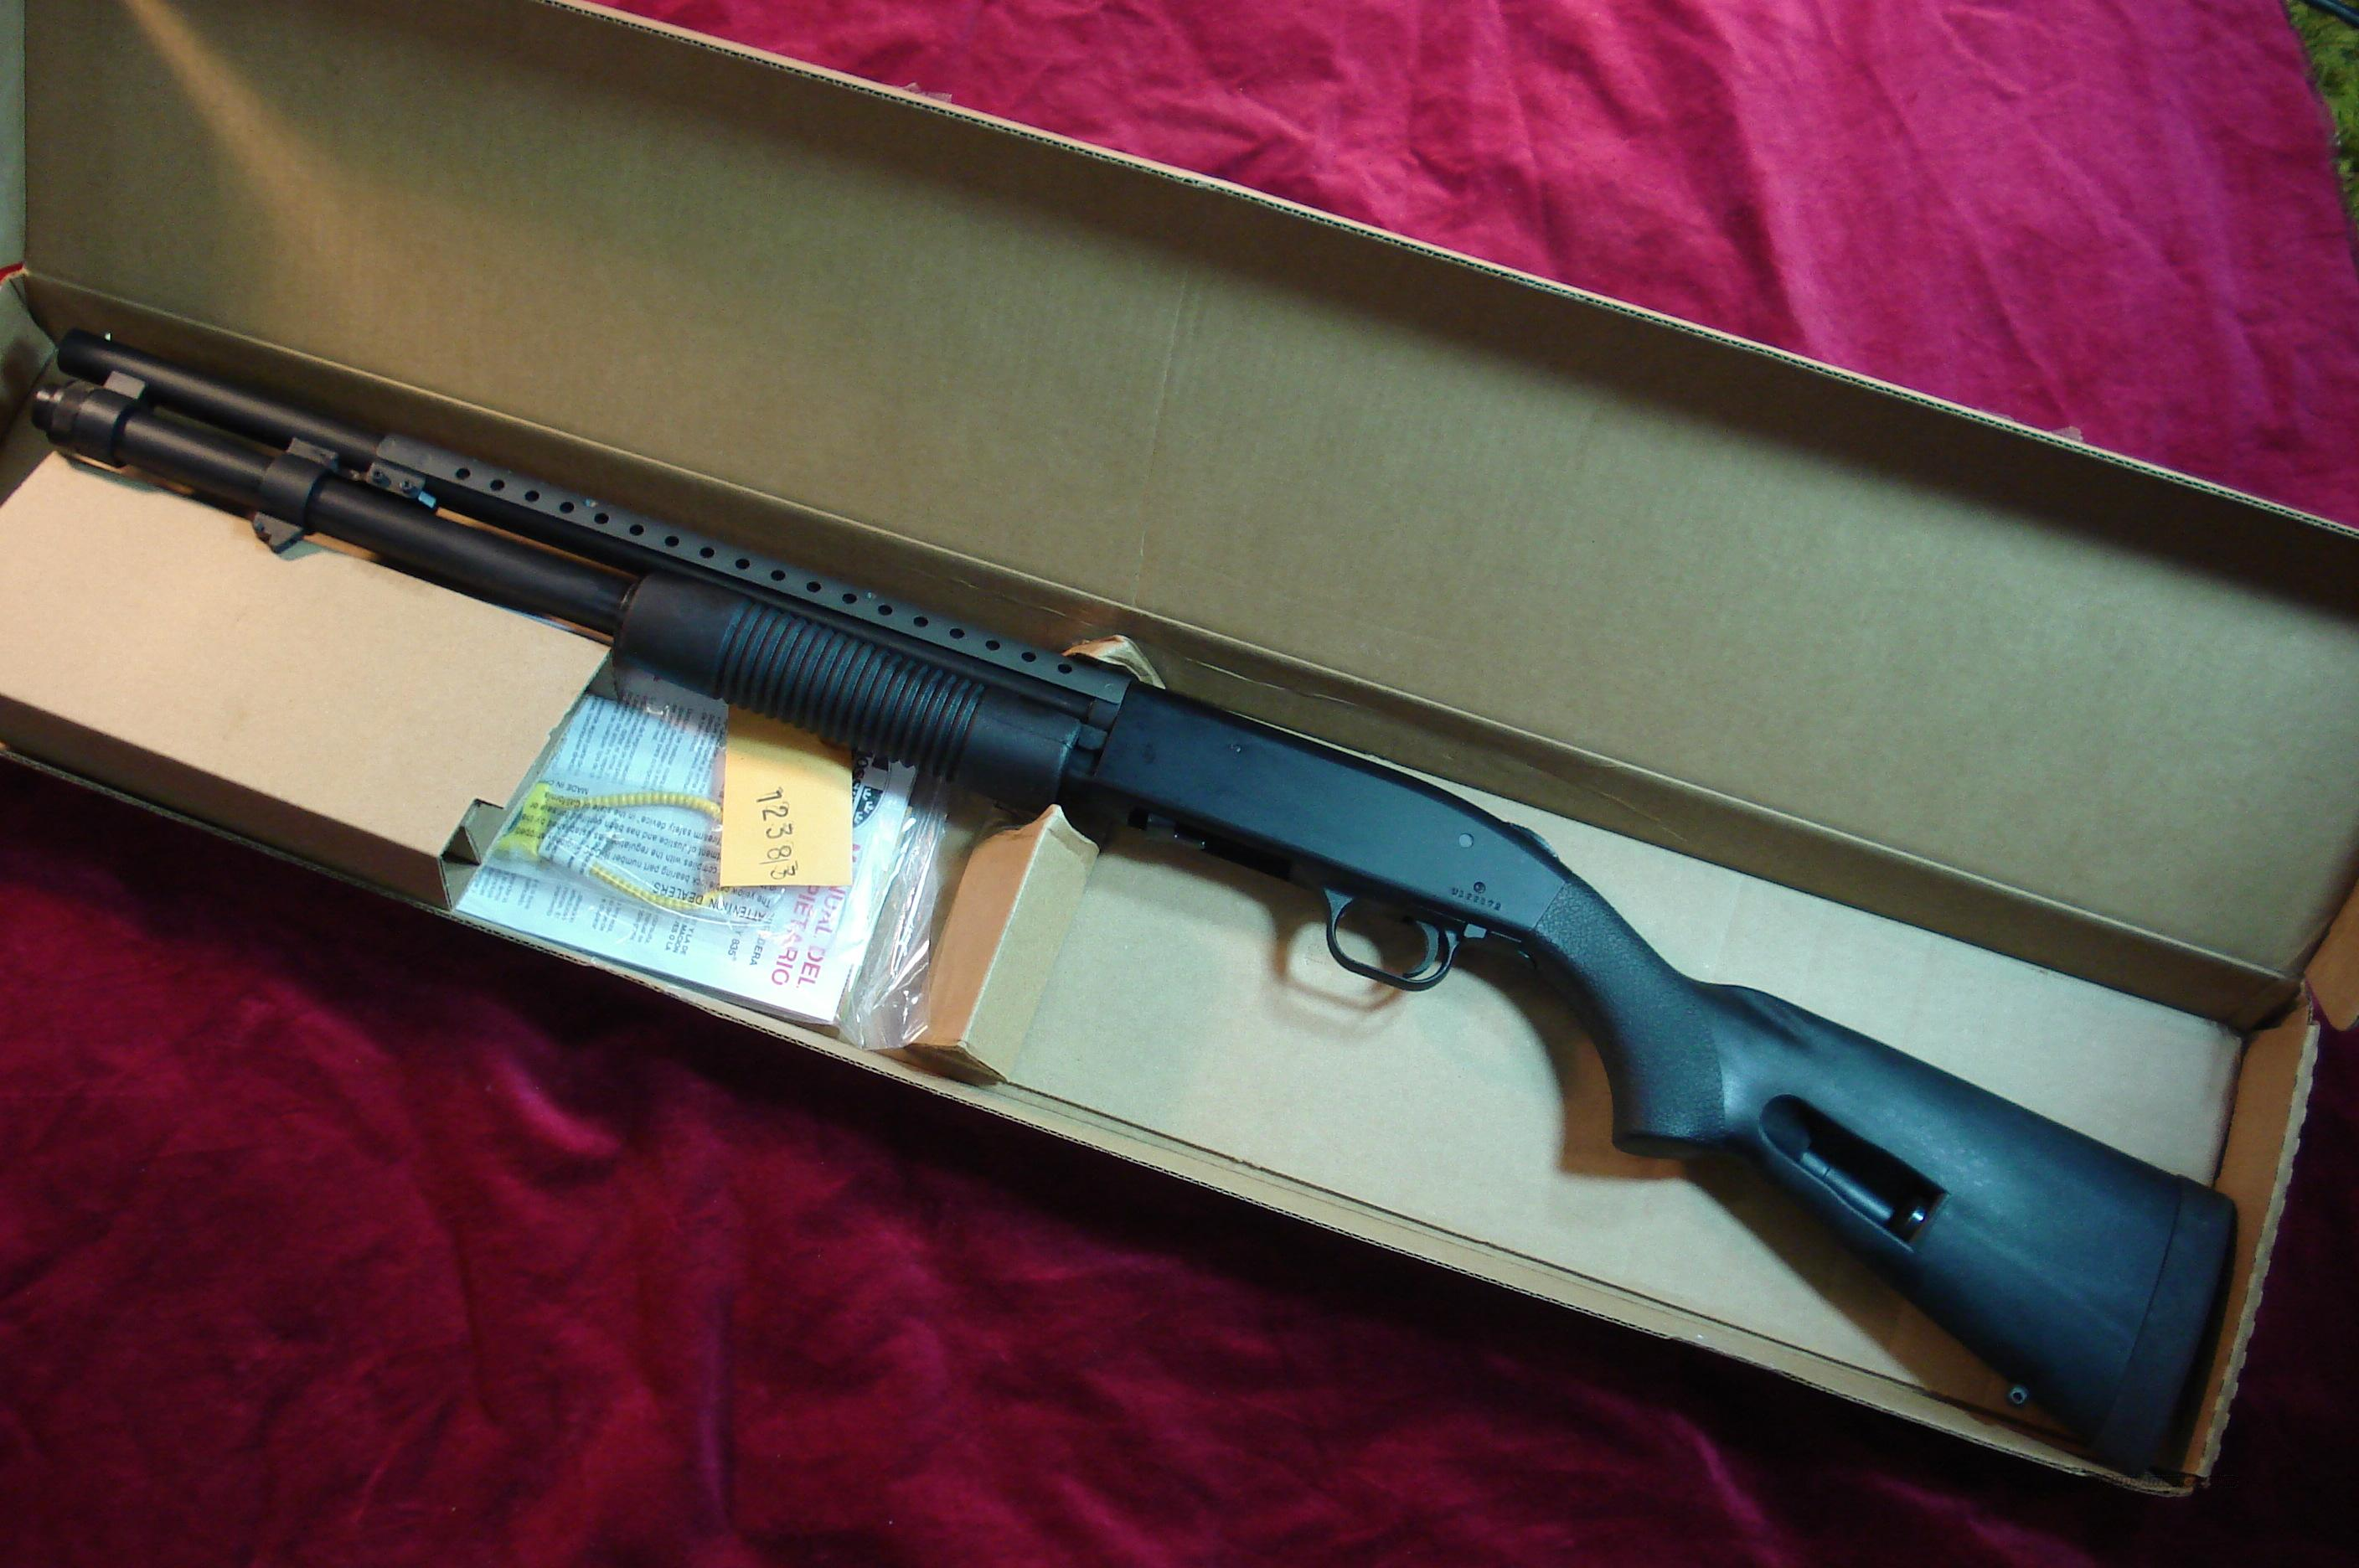 MOSSBERG 590 PERSUADER 12G W/SPEED FEED STOCK,HEAT SHIELD AND MAG   EXTENTION NEW